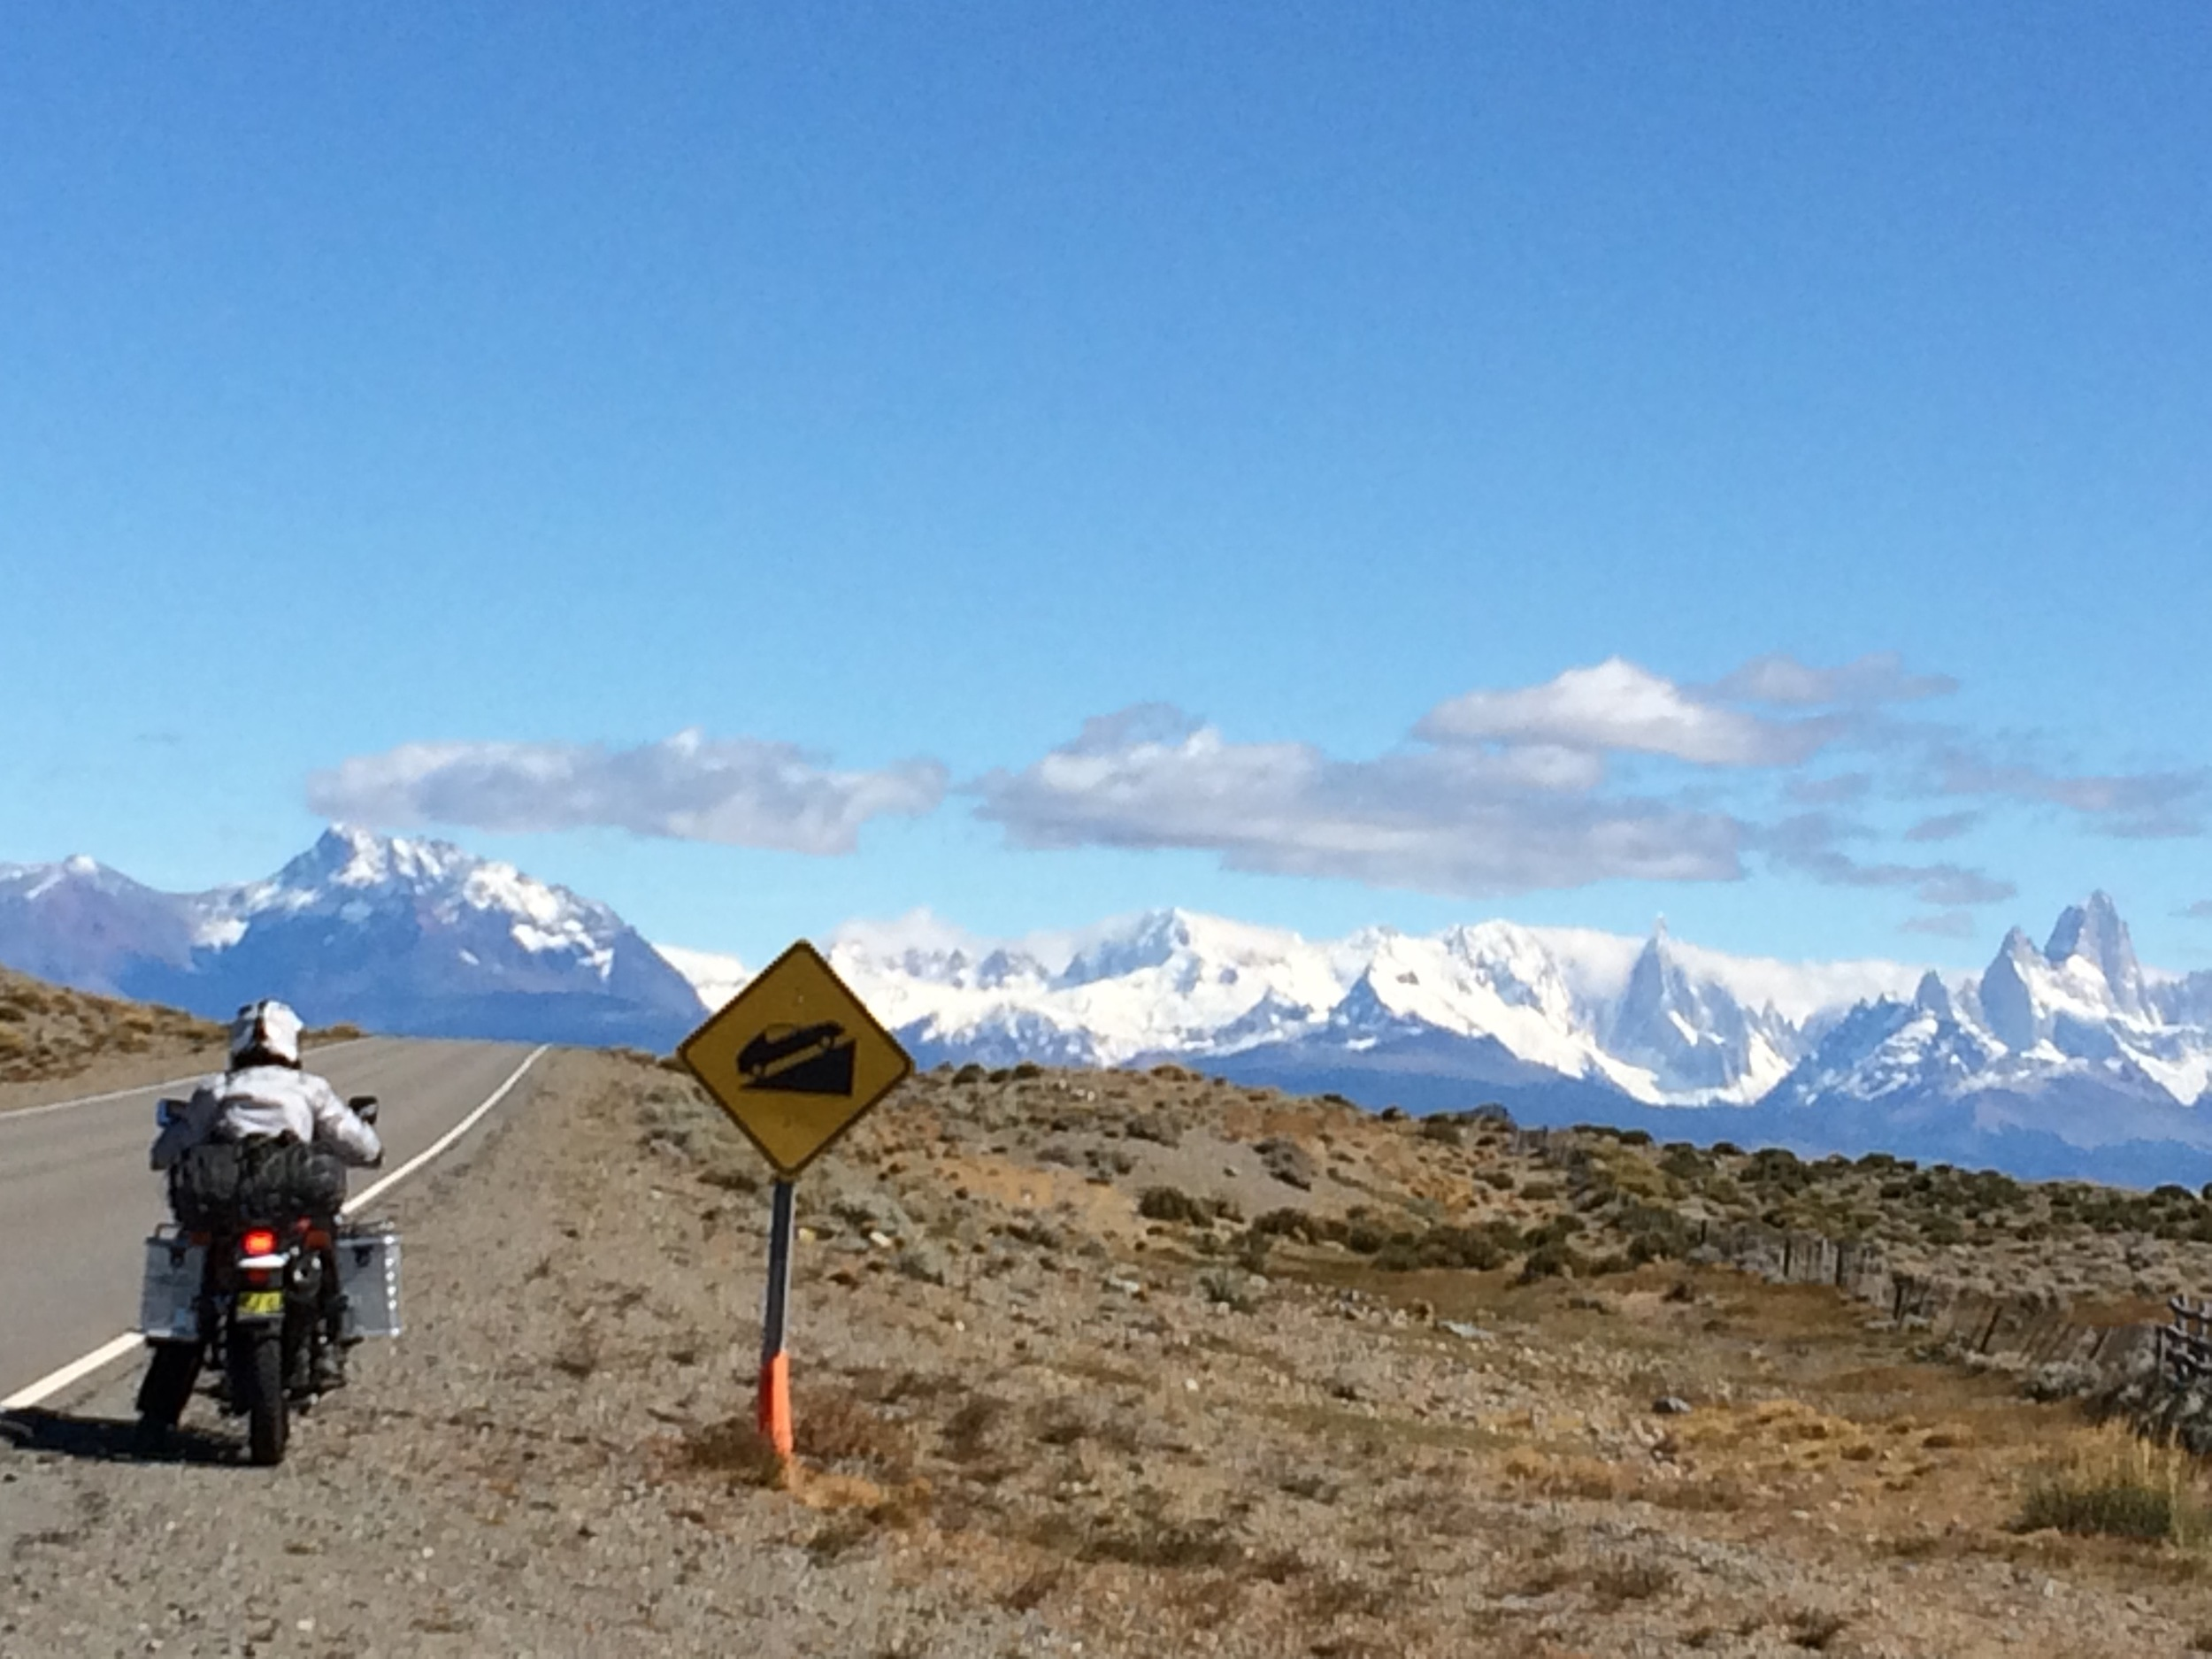 On the road to El Chalten - The magnificent Andes with Mount Fitzroy on far right.